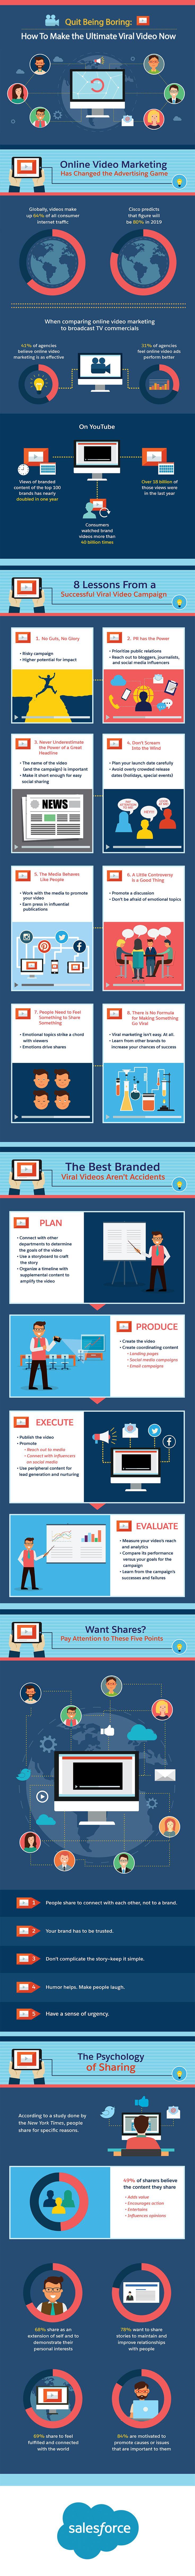 This infographic dives into what it takes to produce viral videos, offers examples of the most popular branded content of all-time, and provides tips marketers can follow to create share-worthy videos for their companies.